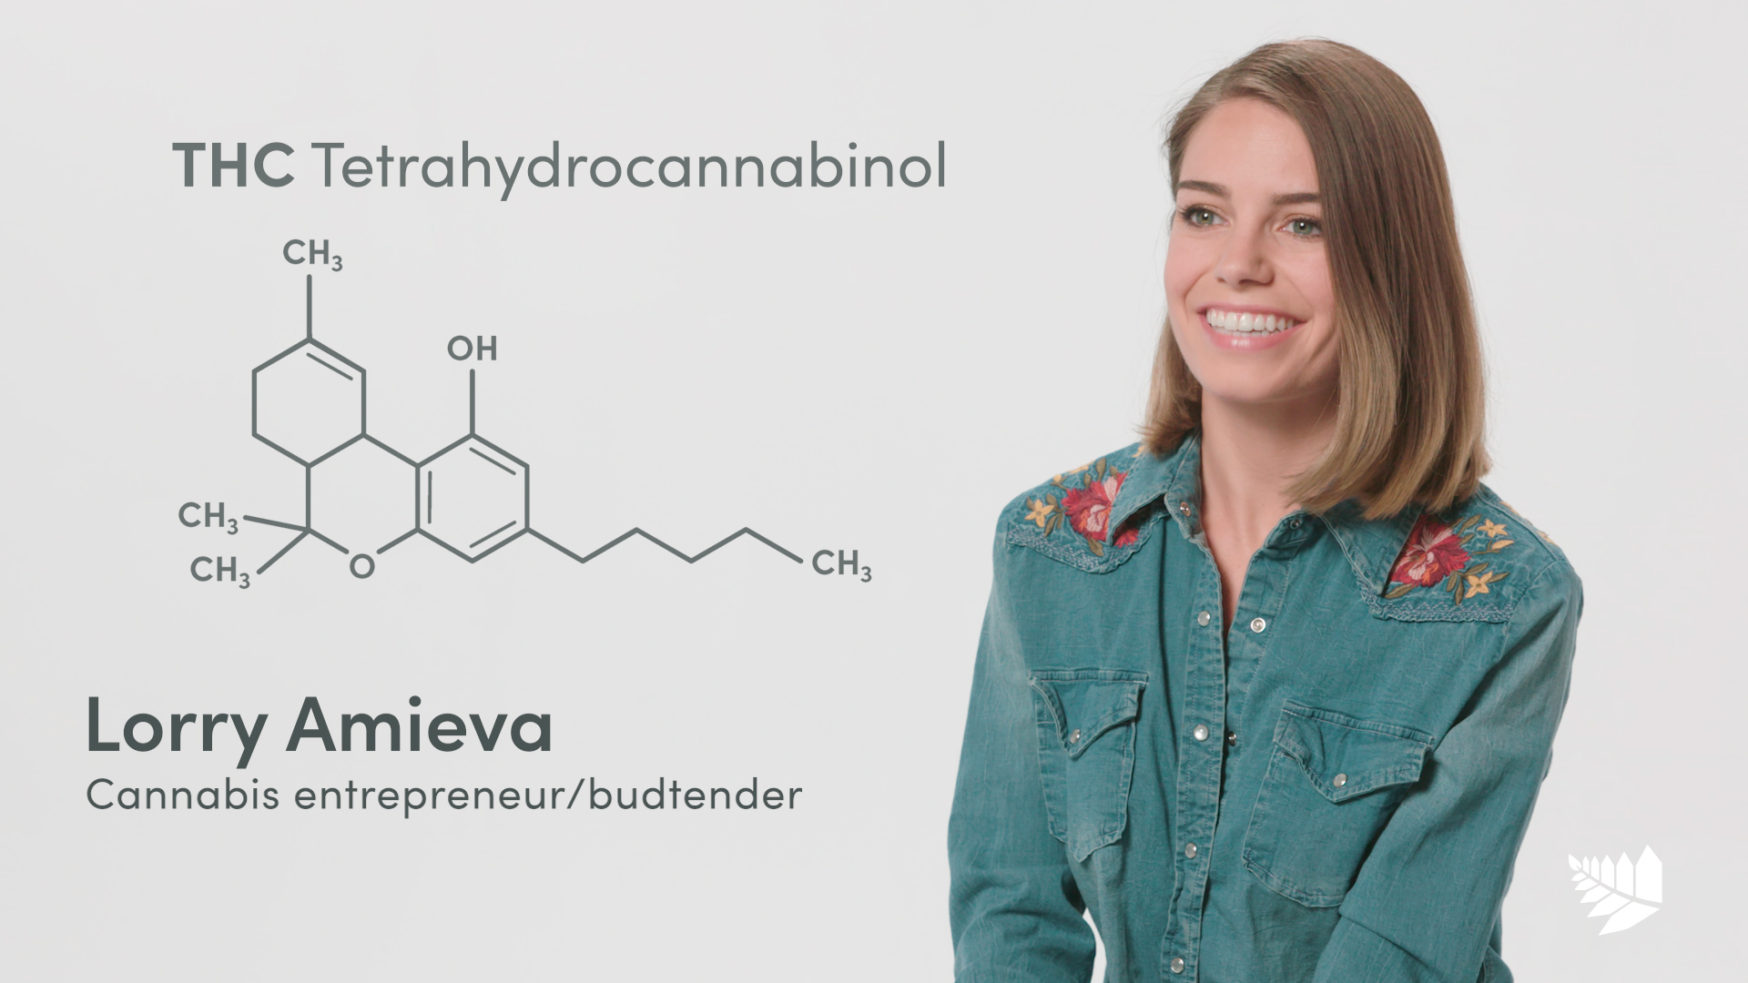 Flowertown explains THC as a component of medical cannabis